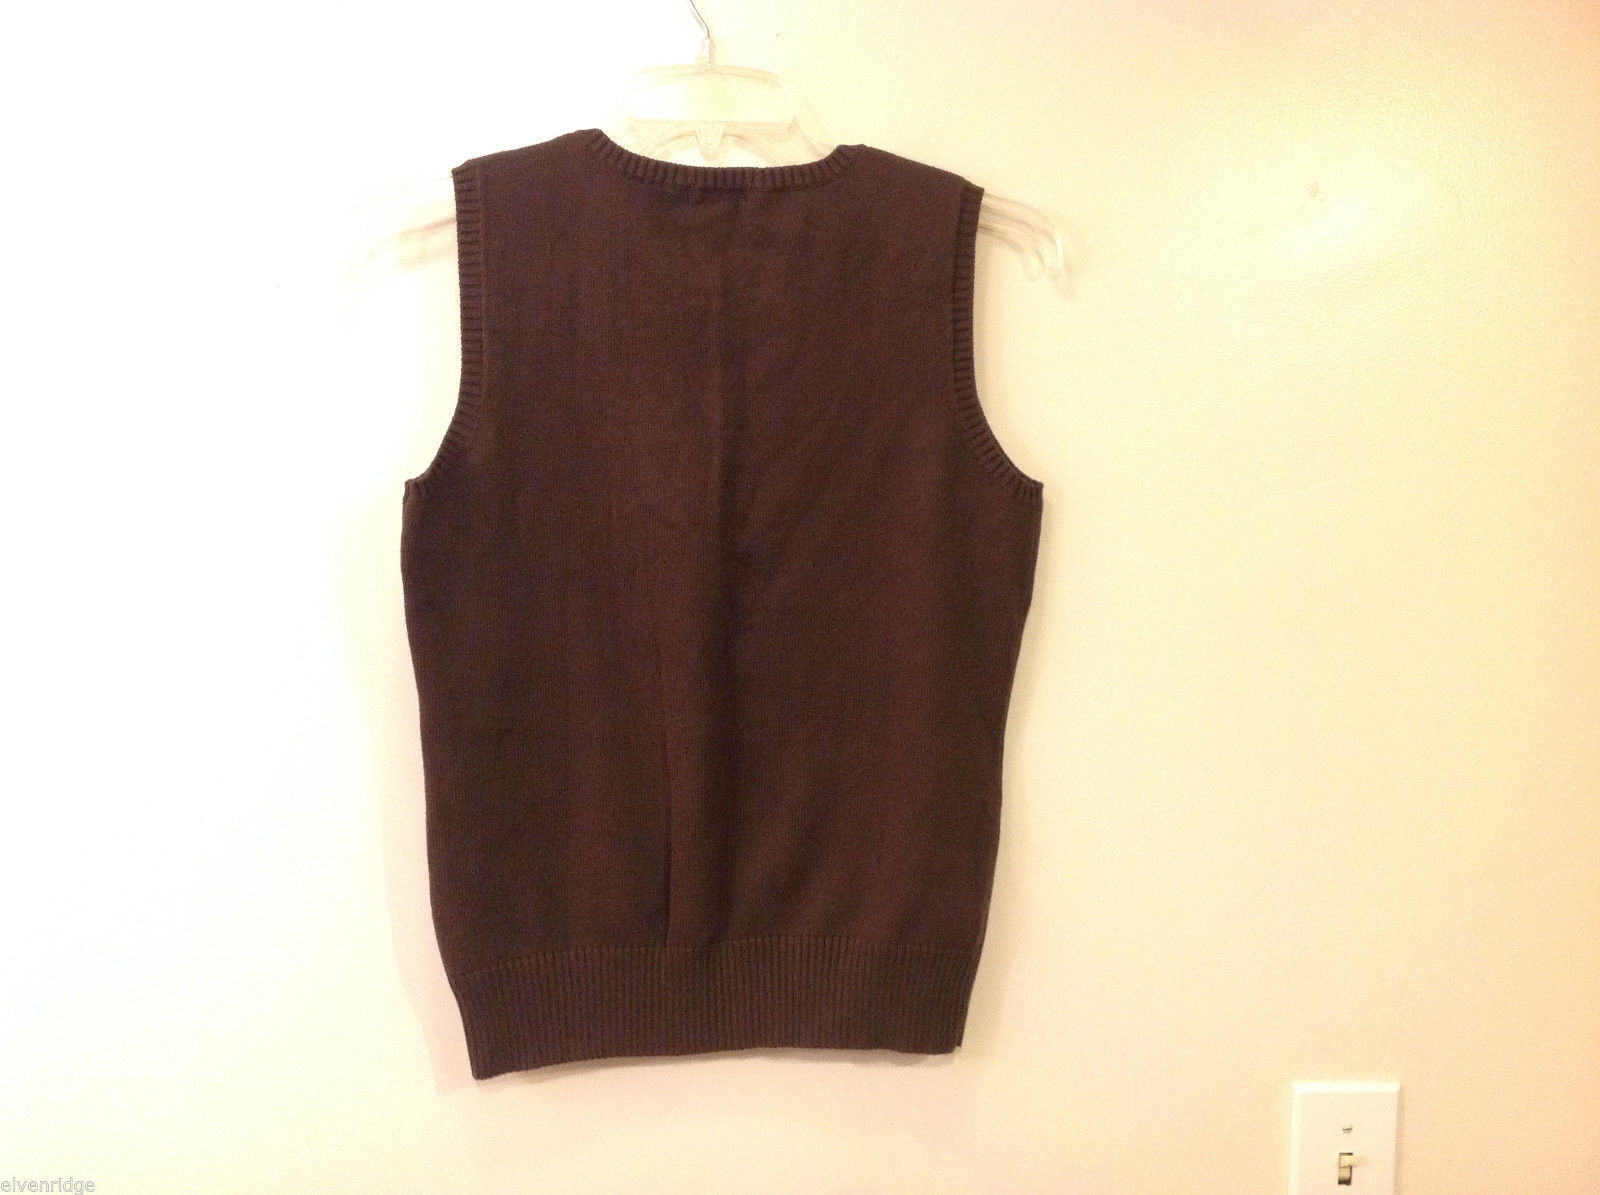 Eddie Bauer Women's Size L Sleeveless Vest in Chocolate Brown Cotton Blend Knit